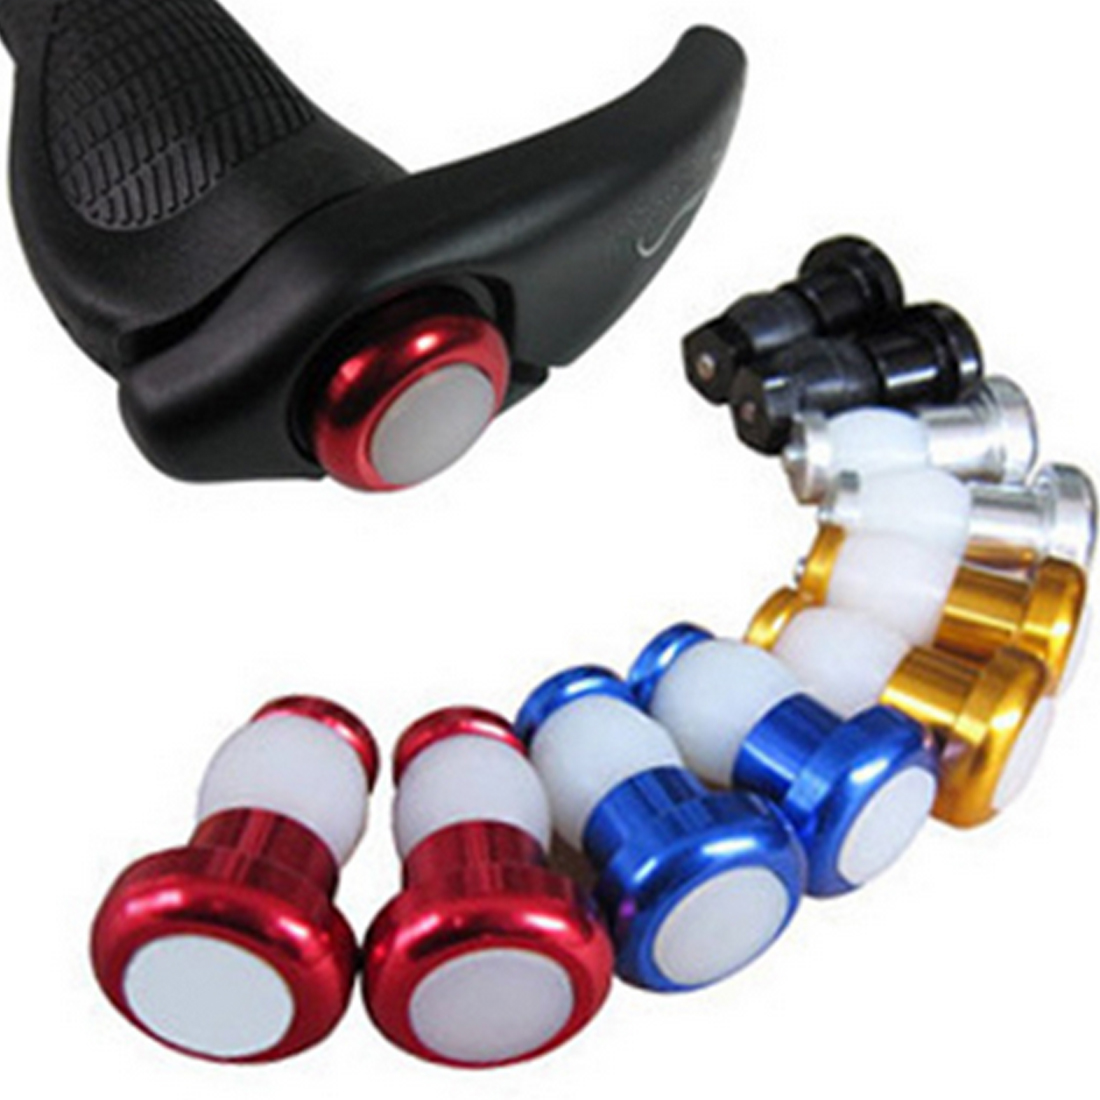 Bright 1Pair Bike Light Turn Signal LED Handlebar Indicator Safety Warning Lamp Cycling Safety Caution Light Bicycle Accessories